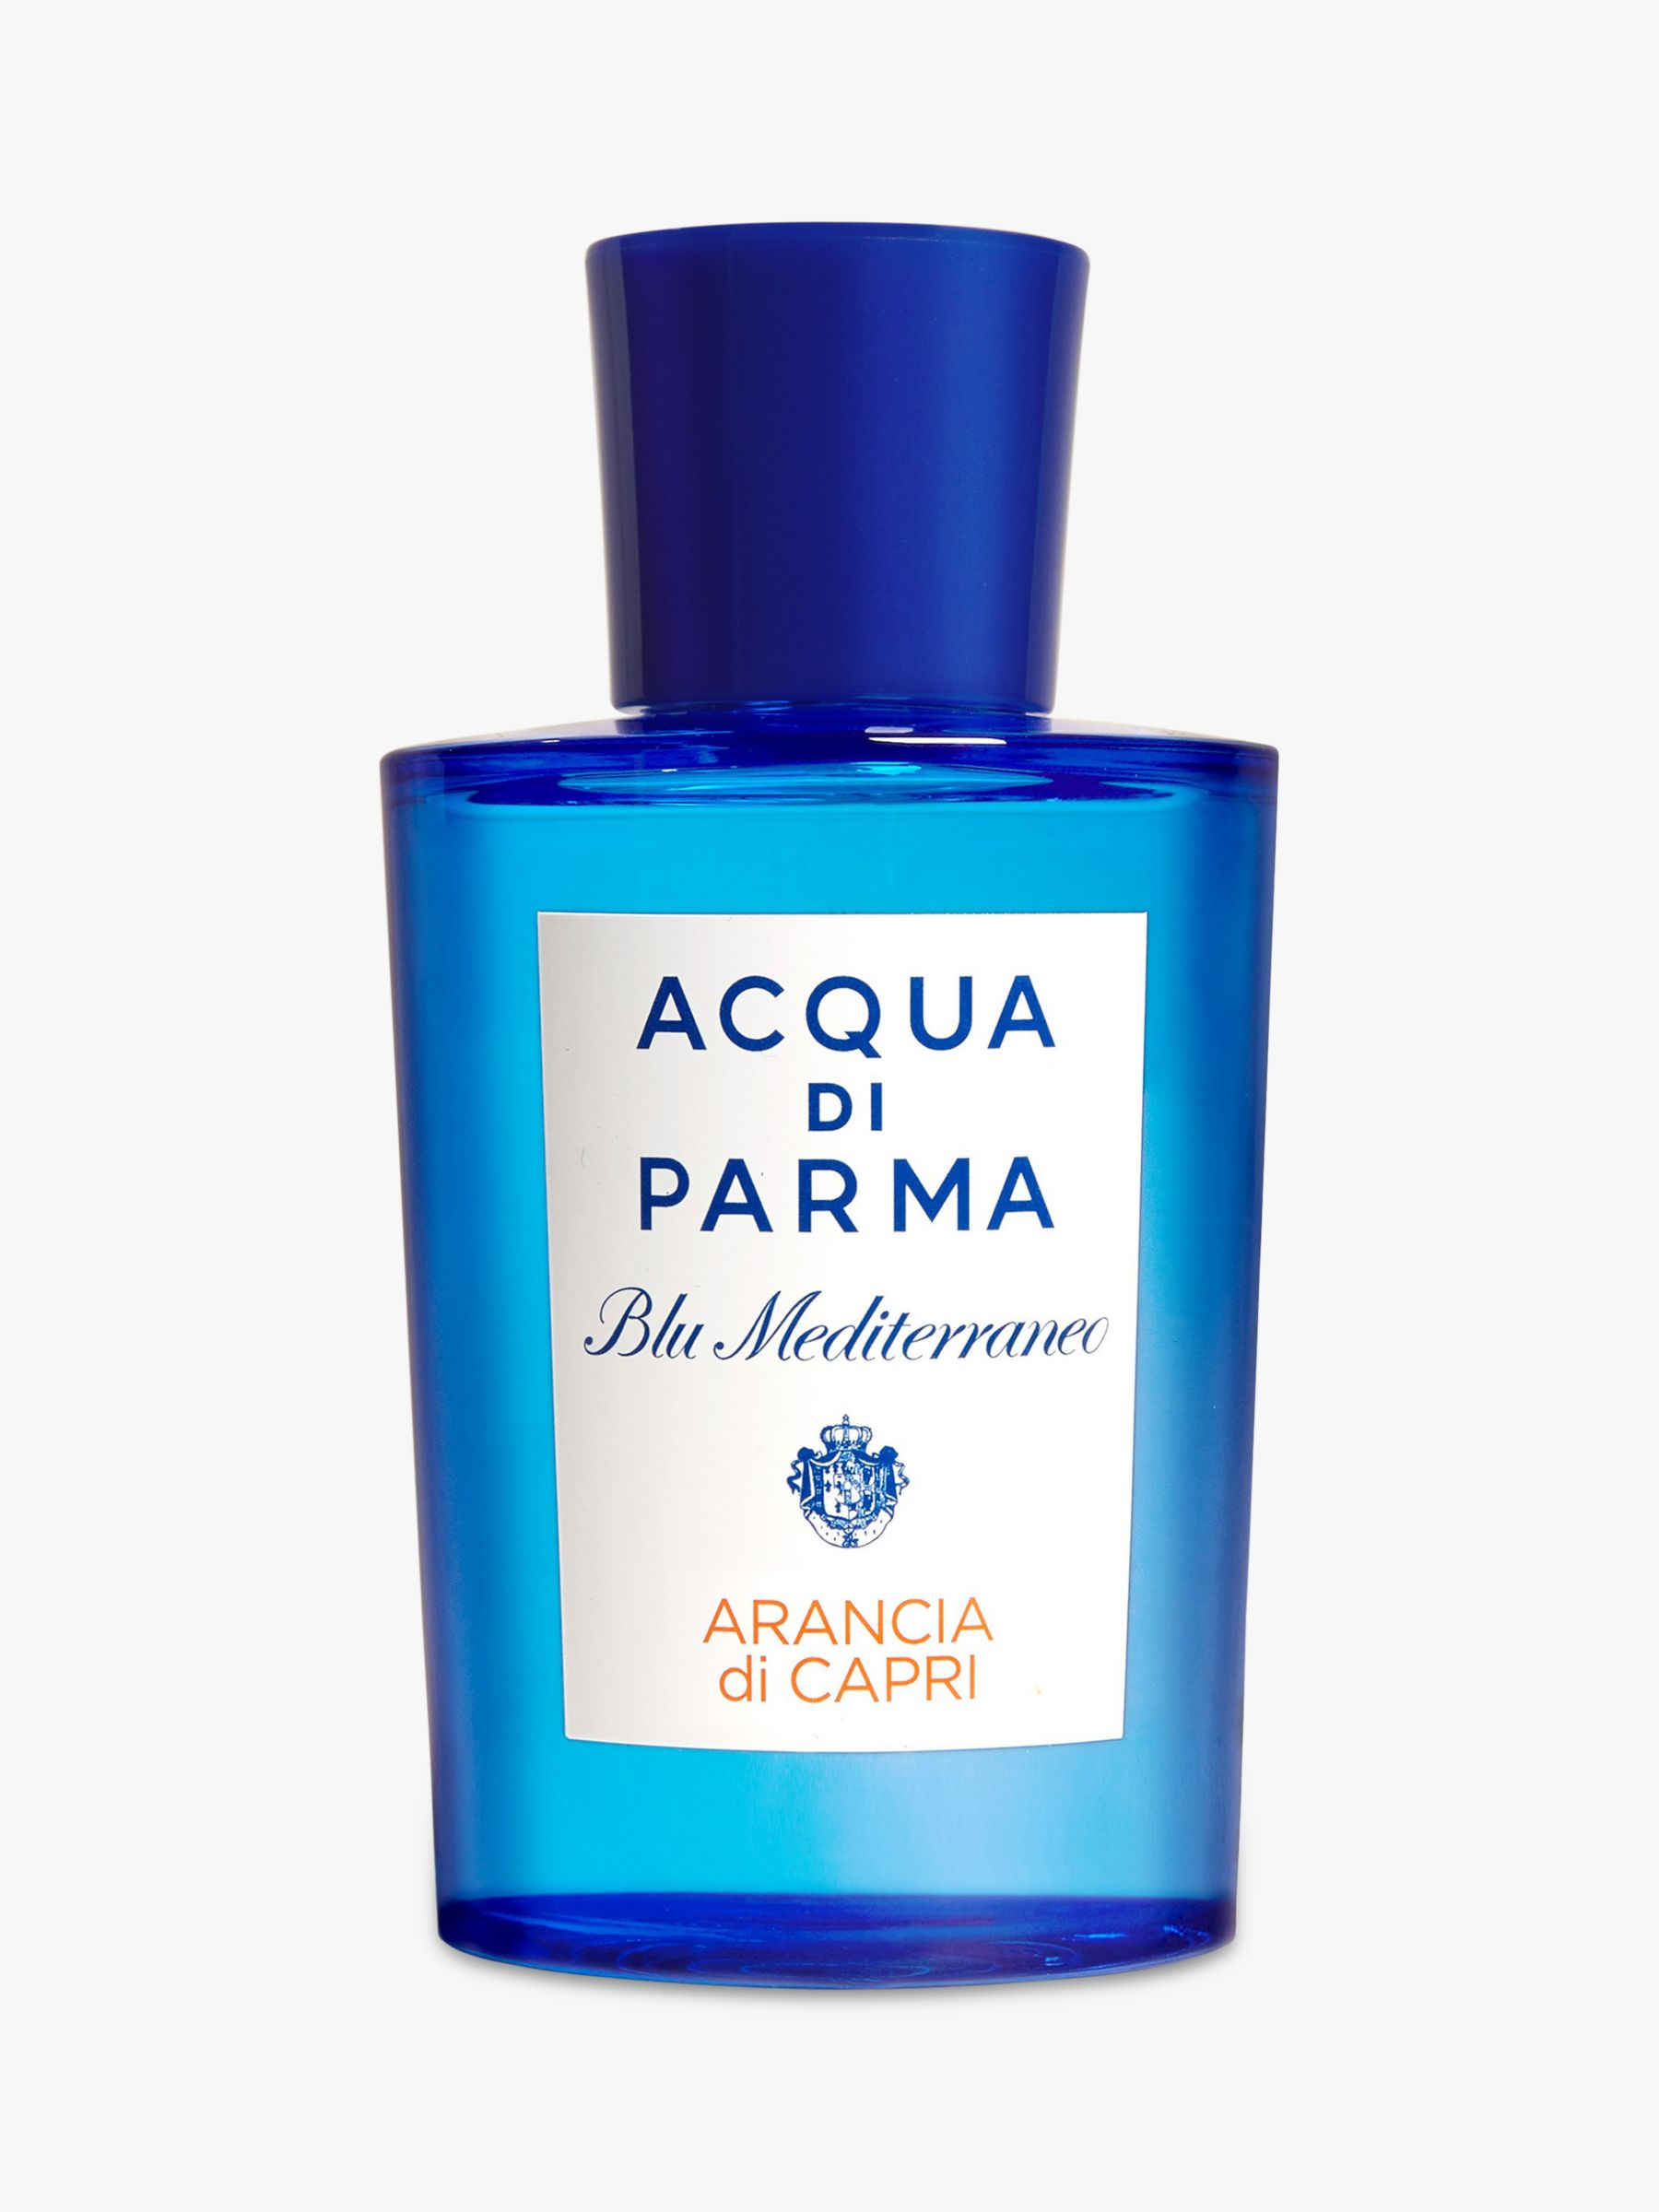 Buy Acqua di Parma Blu Mediterraneo Arancia di Capri Eau de Toilette Spray, 75ml Online at johnlewis.com